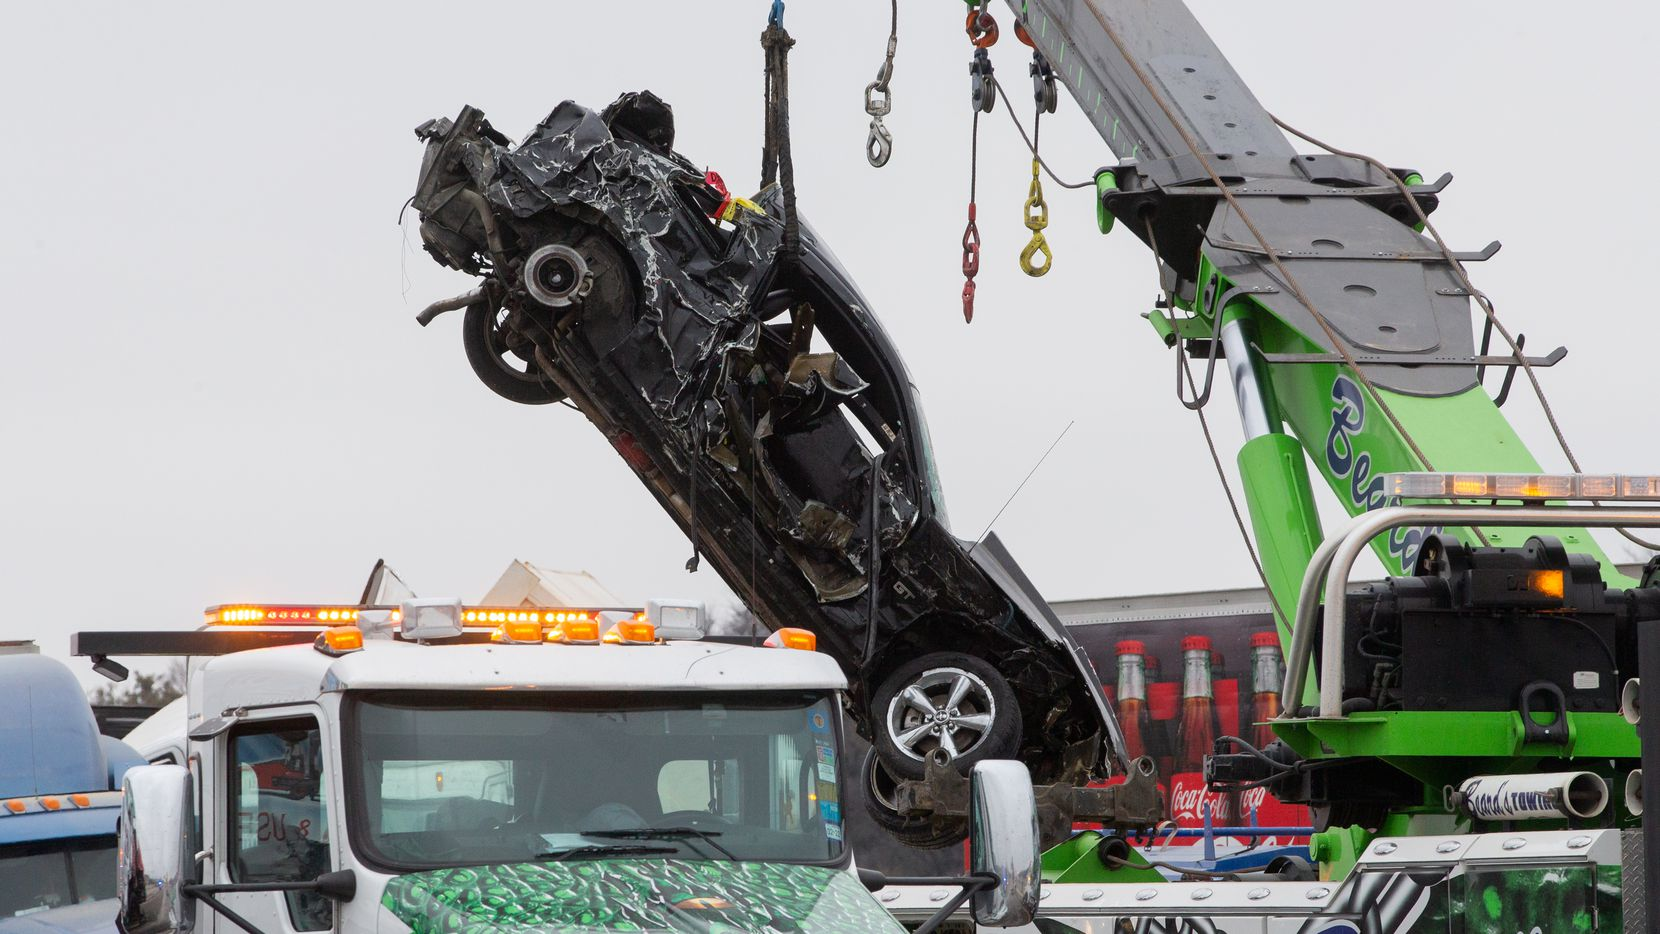 Crews work to clear the mass casualty pile-up on I-35W and Northside Drive in Fort Worth on Thursday, Feb. 11, 2021. (Juan Figueroa/ The Dallas Morning News)